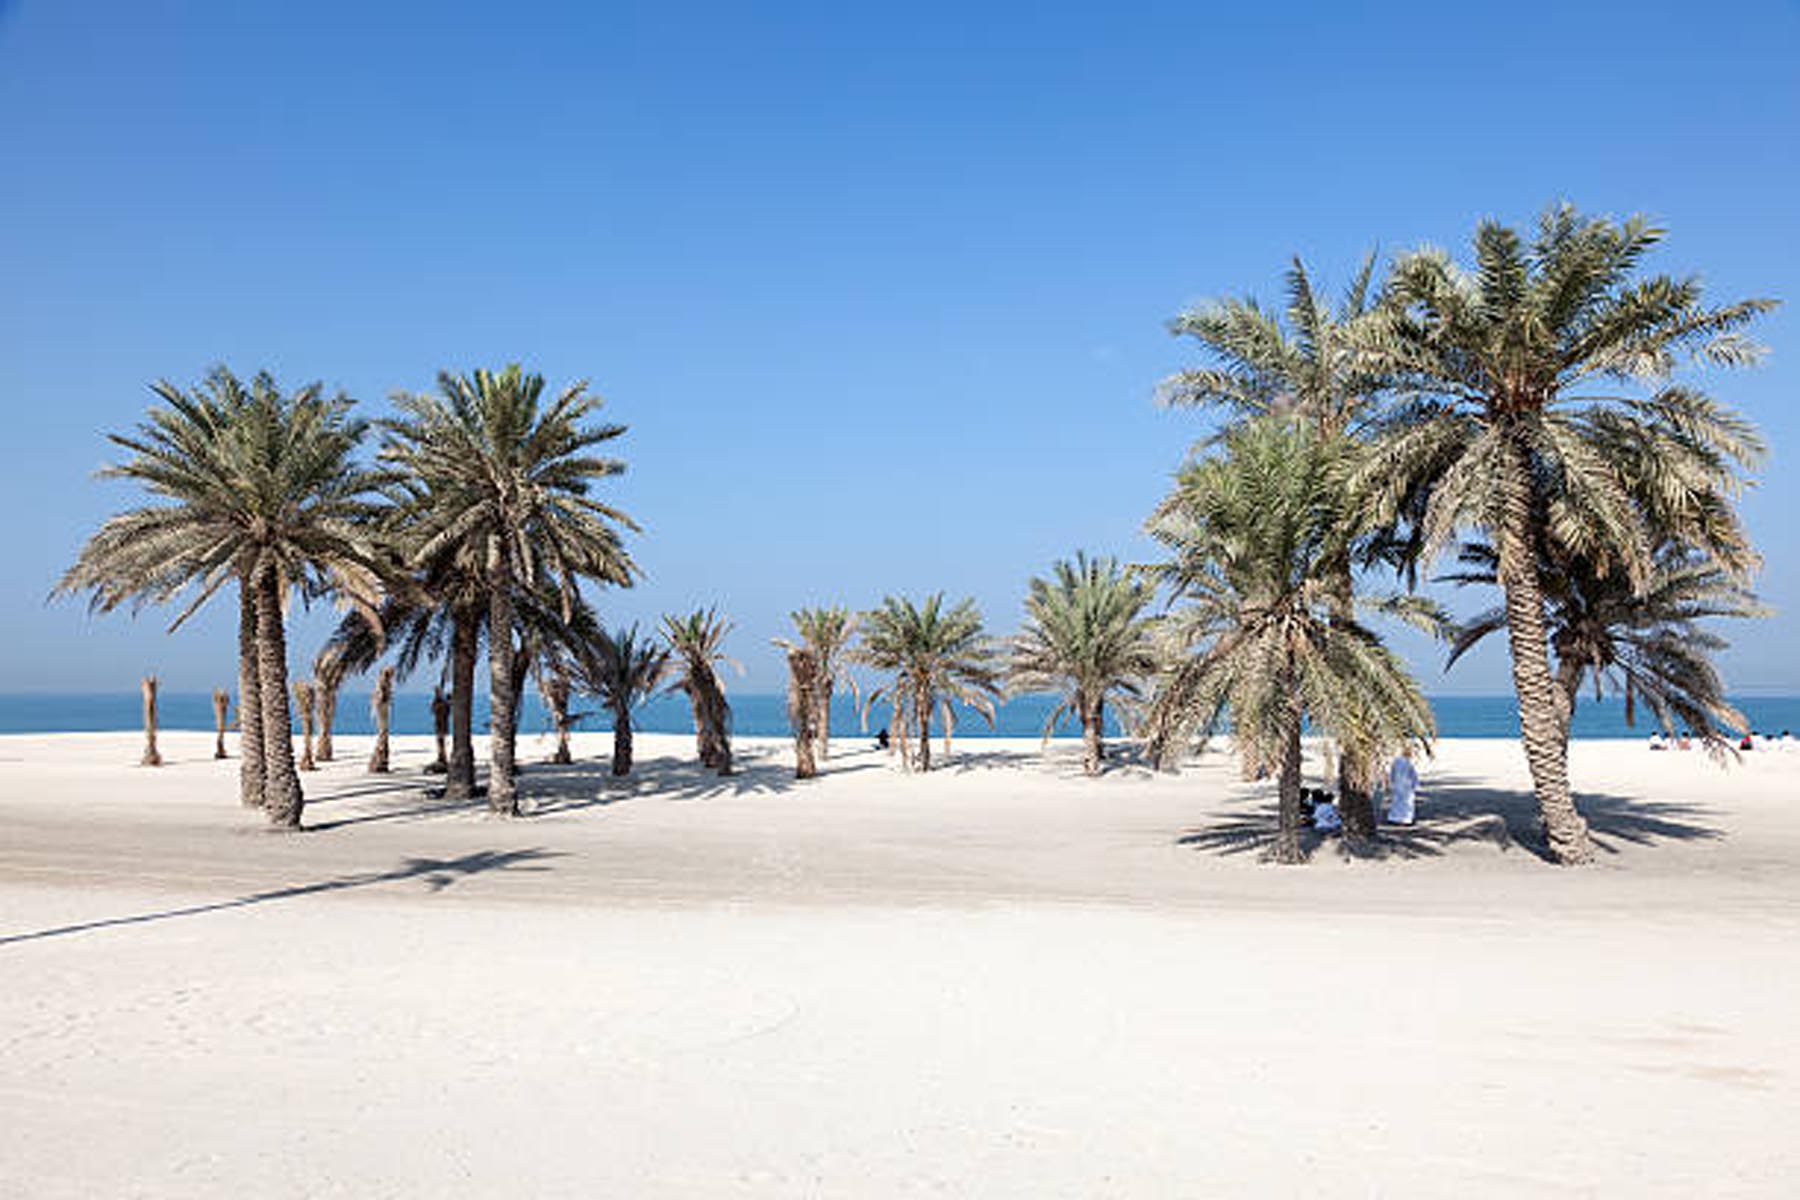 Beautiful beach with palm trees in Umm Al Quwain, United Arab Emirates